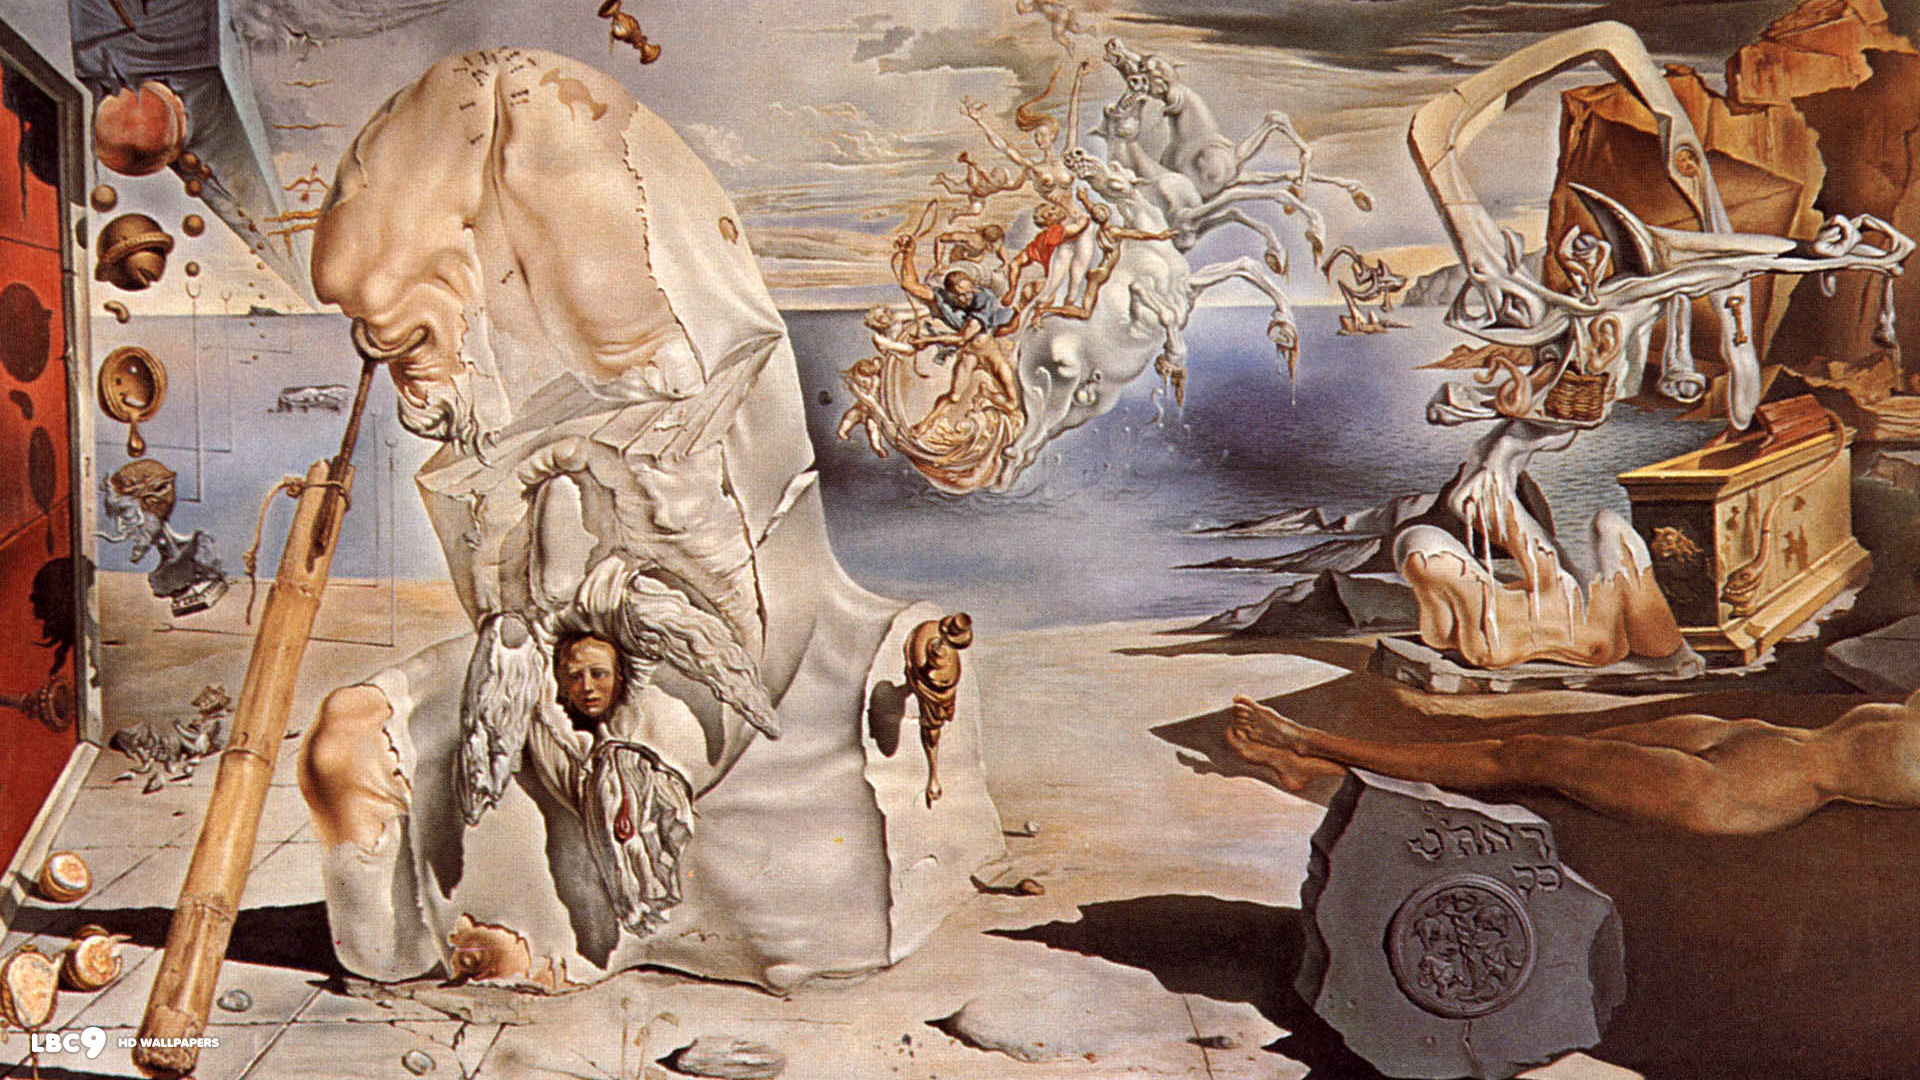 salvador dali wallpaper 1/38 | paintings hd backgrounds